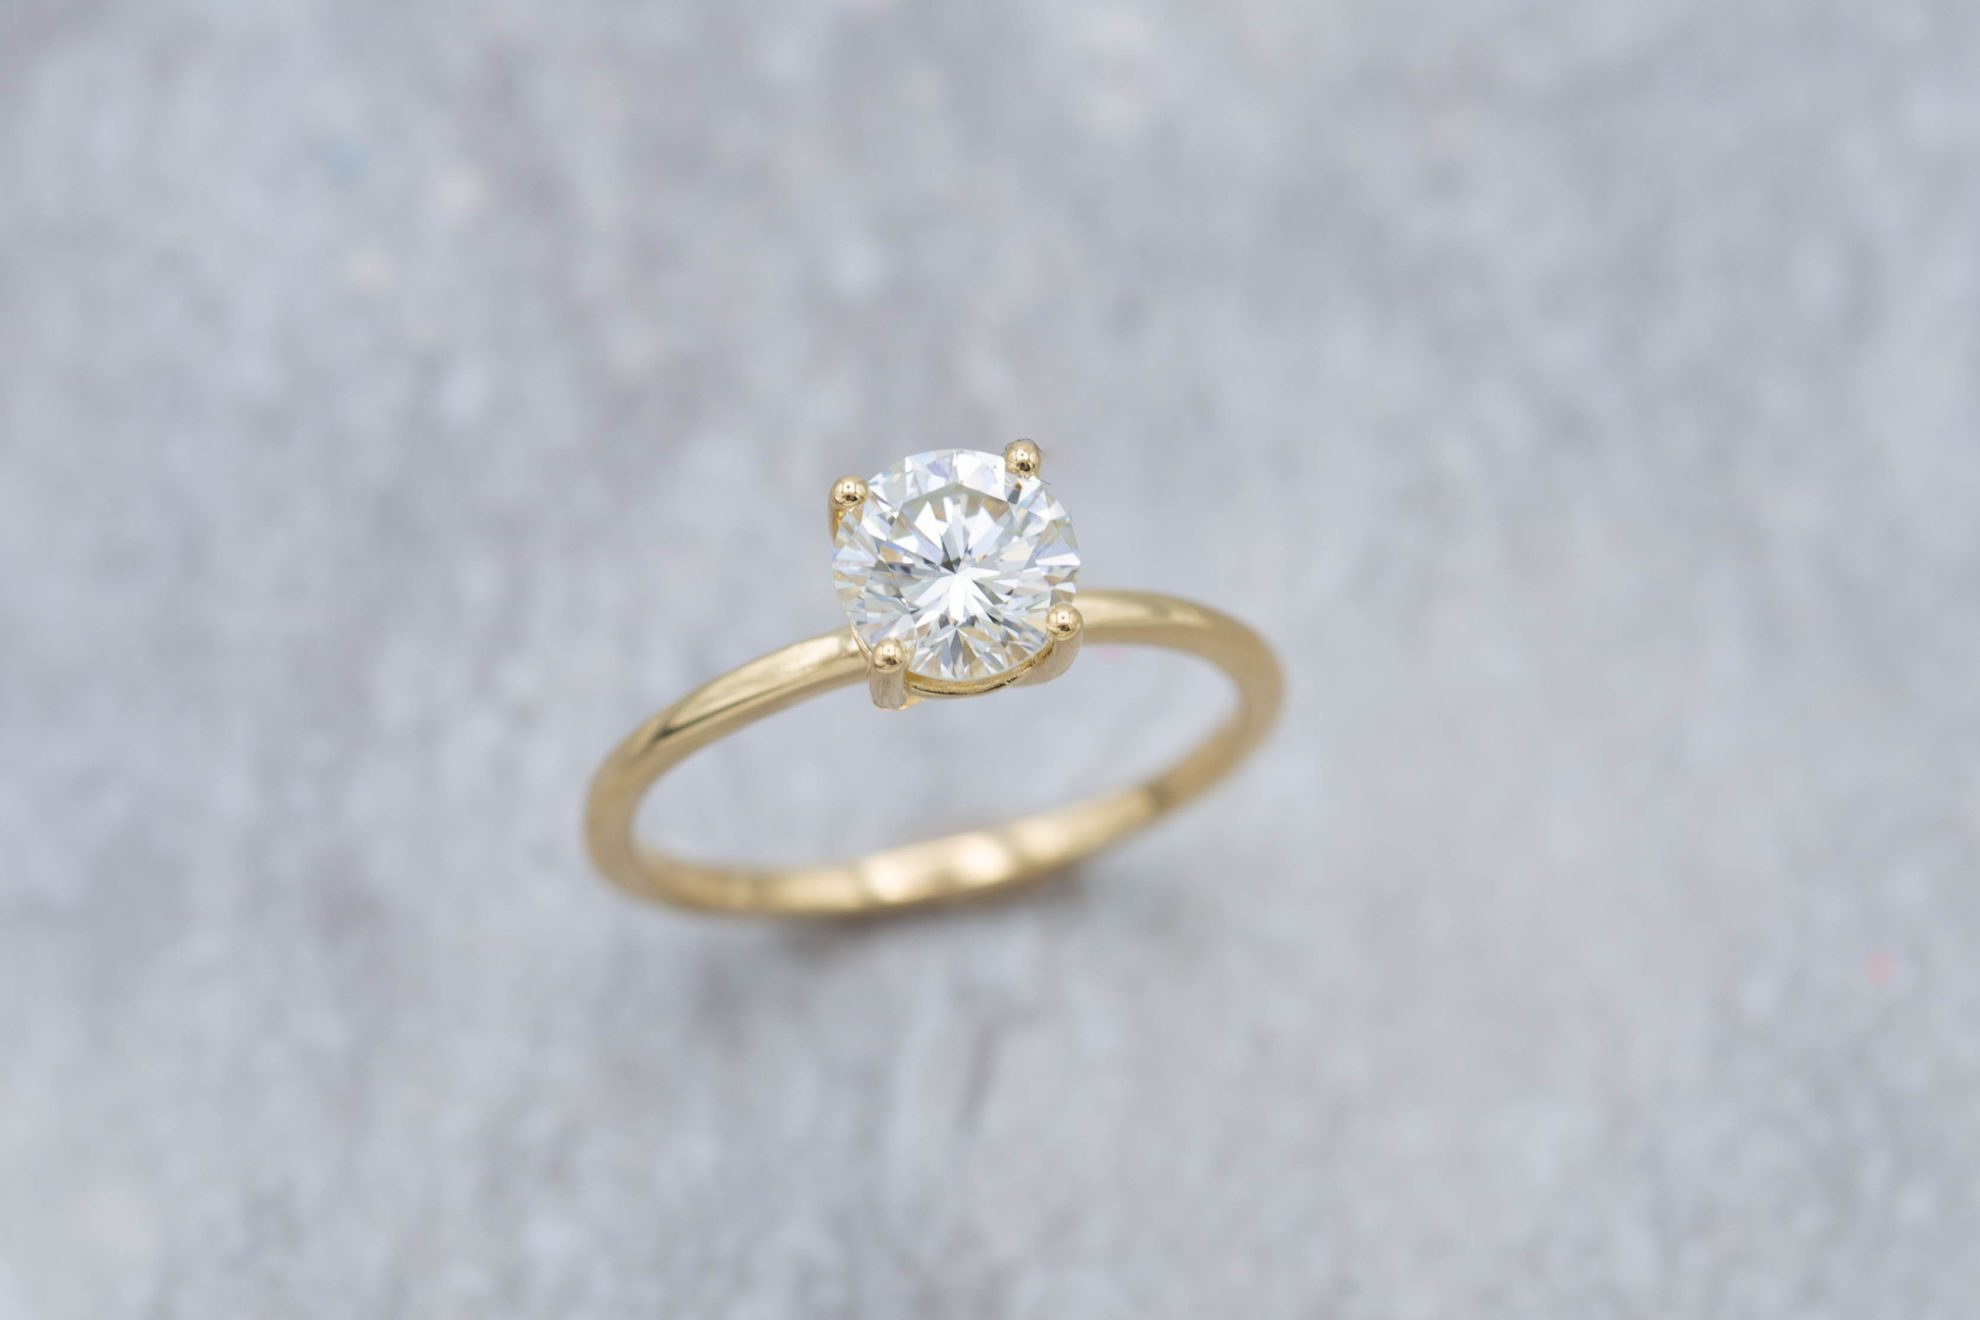 engagement ring settings - 0.91ct solitaire